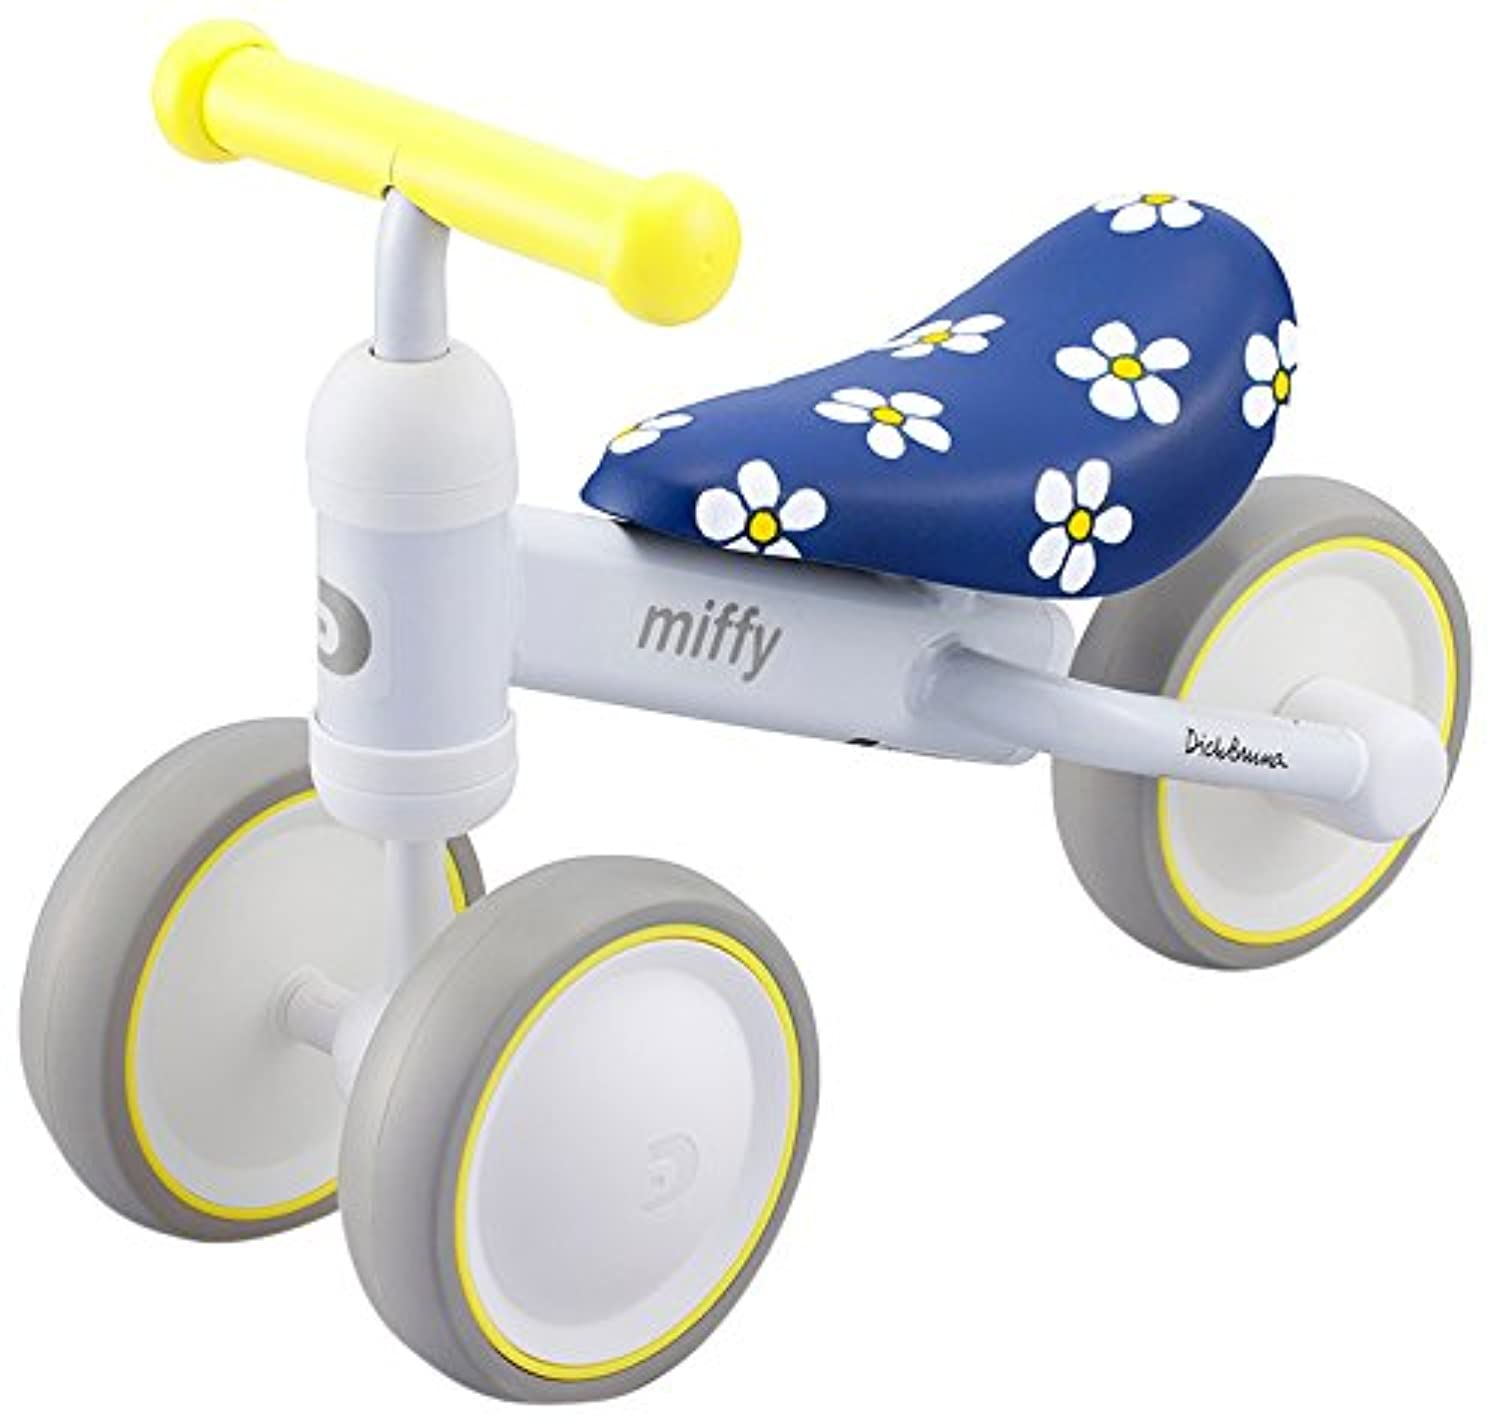 D-Bike mini miffy